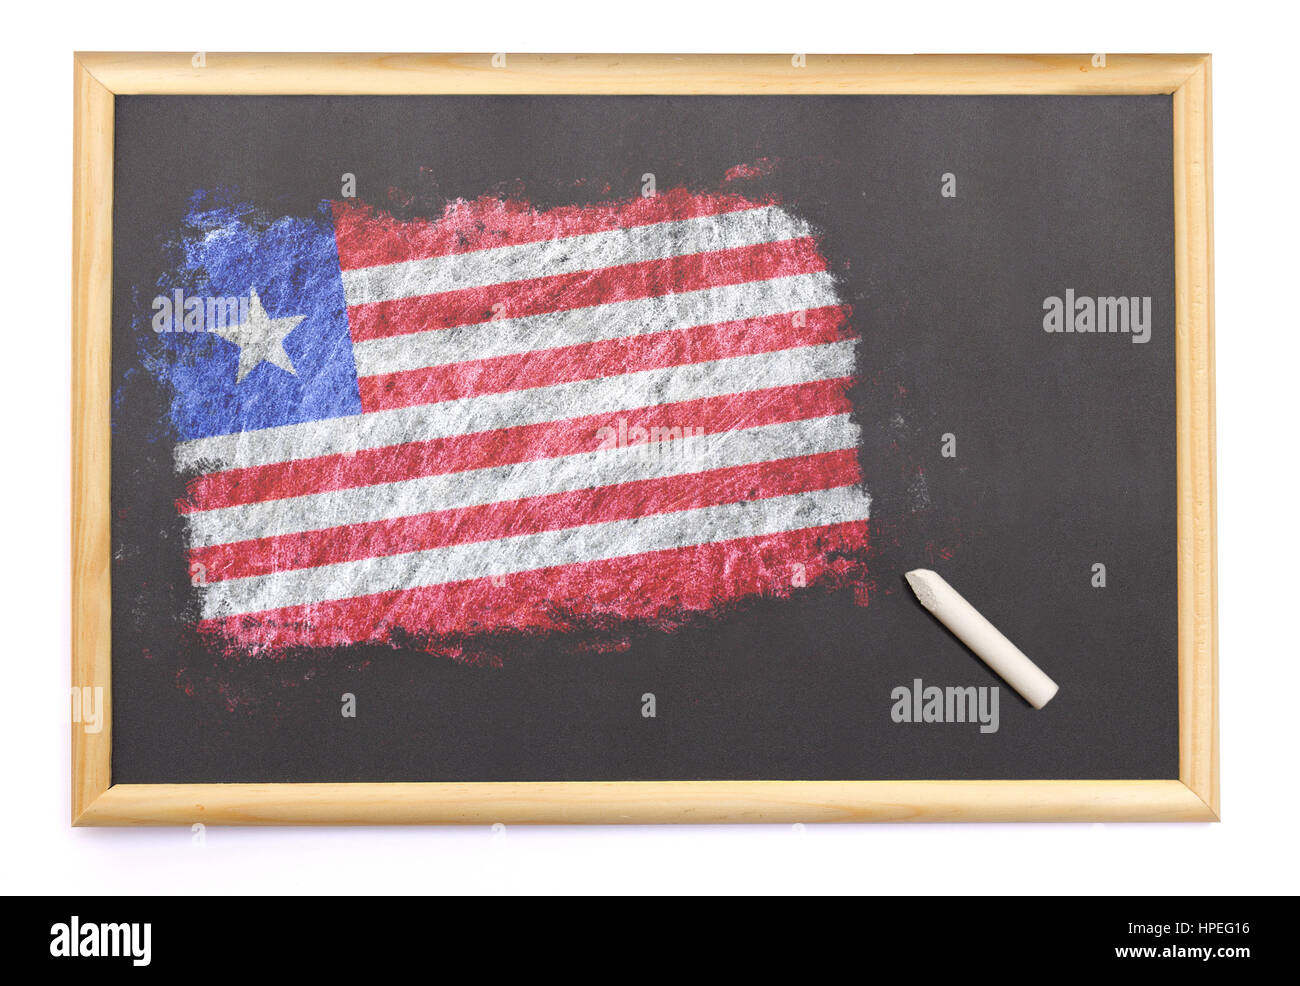 Blackboard with the national flag of Liberia drawn on and a chalk.(series) - Stock Image